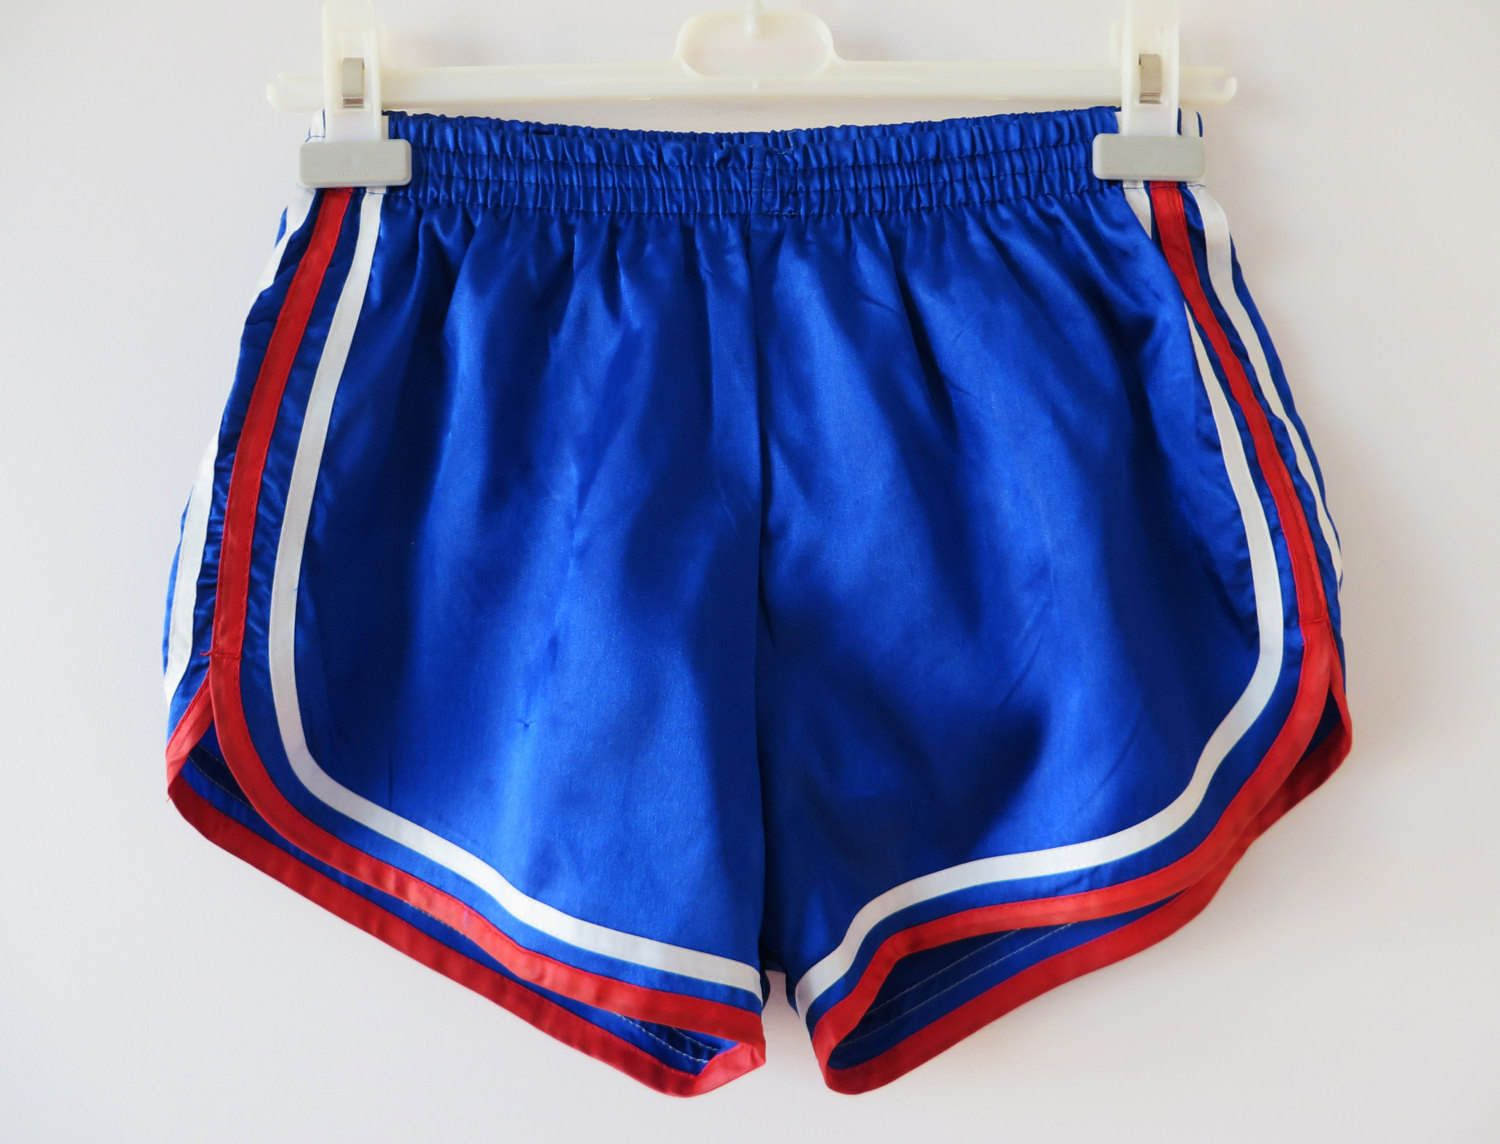 80s sports shorts